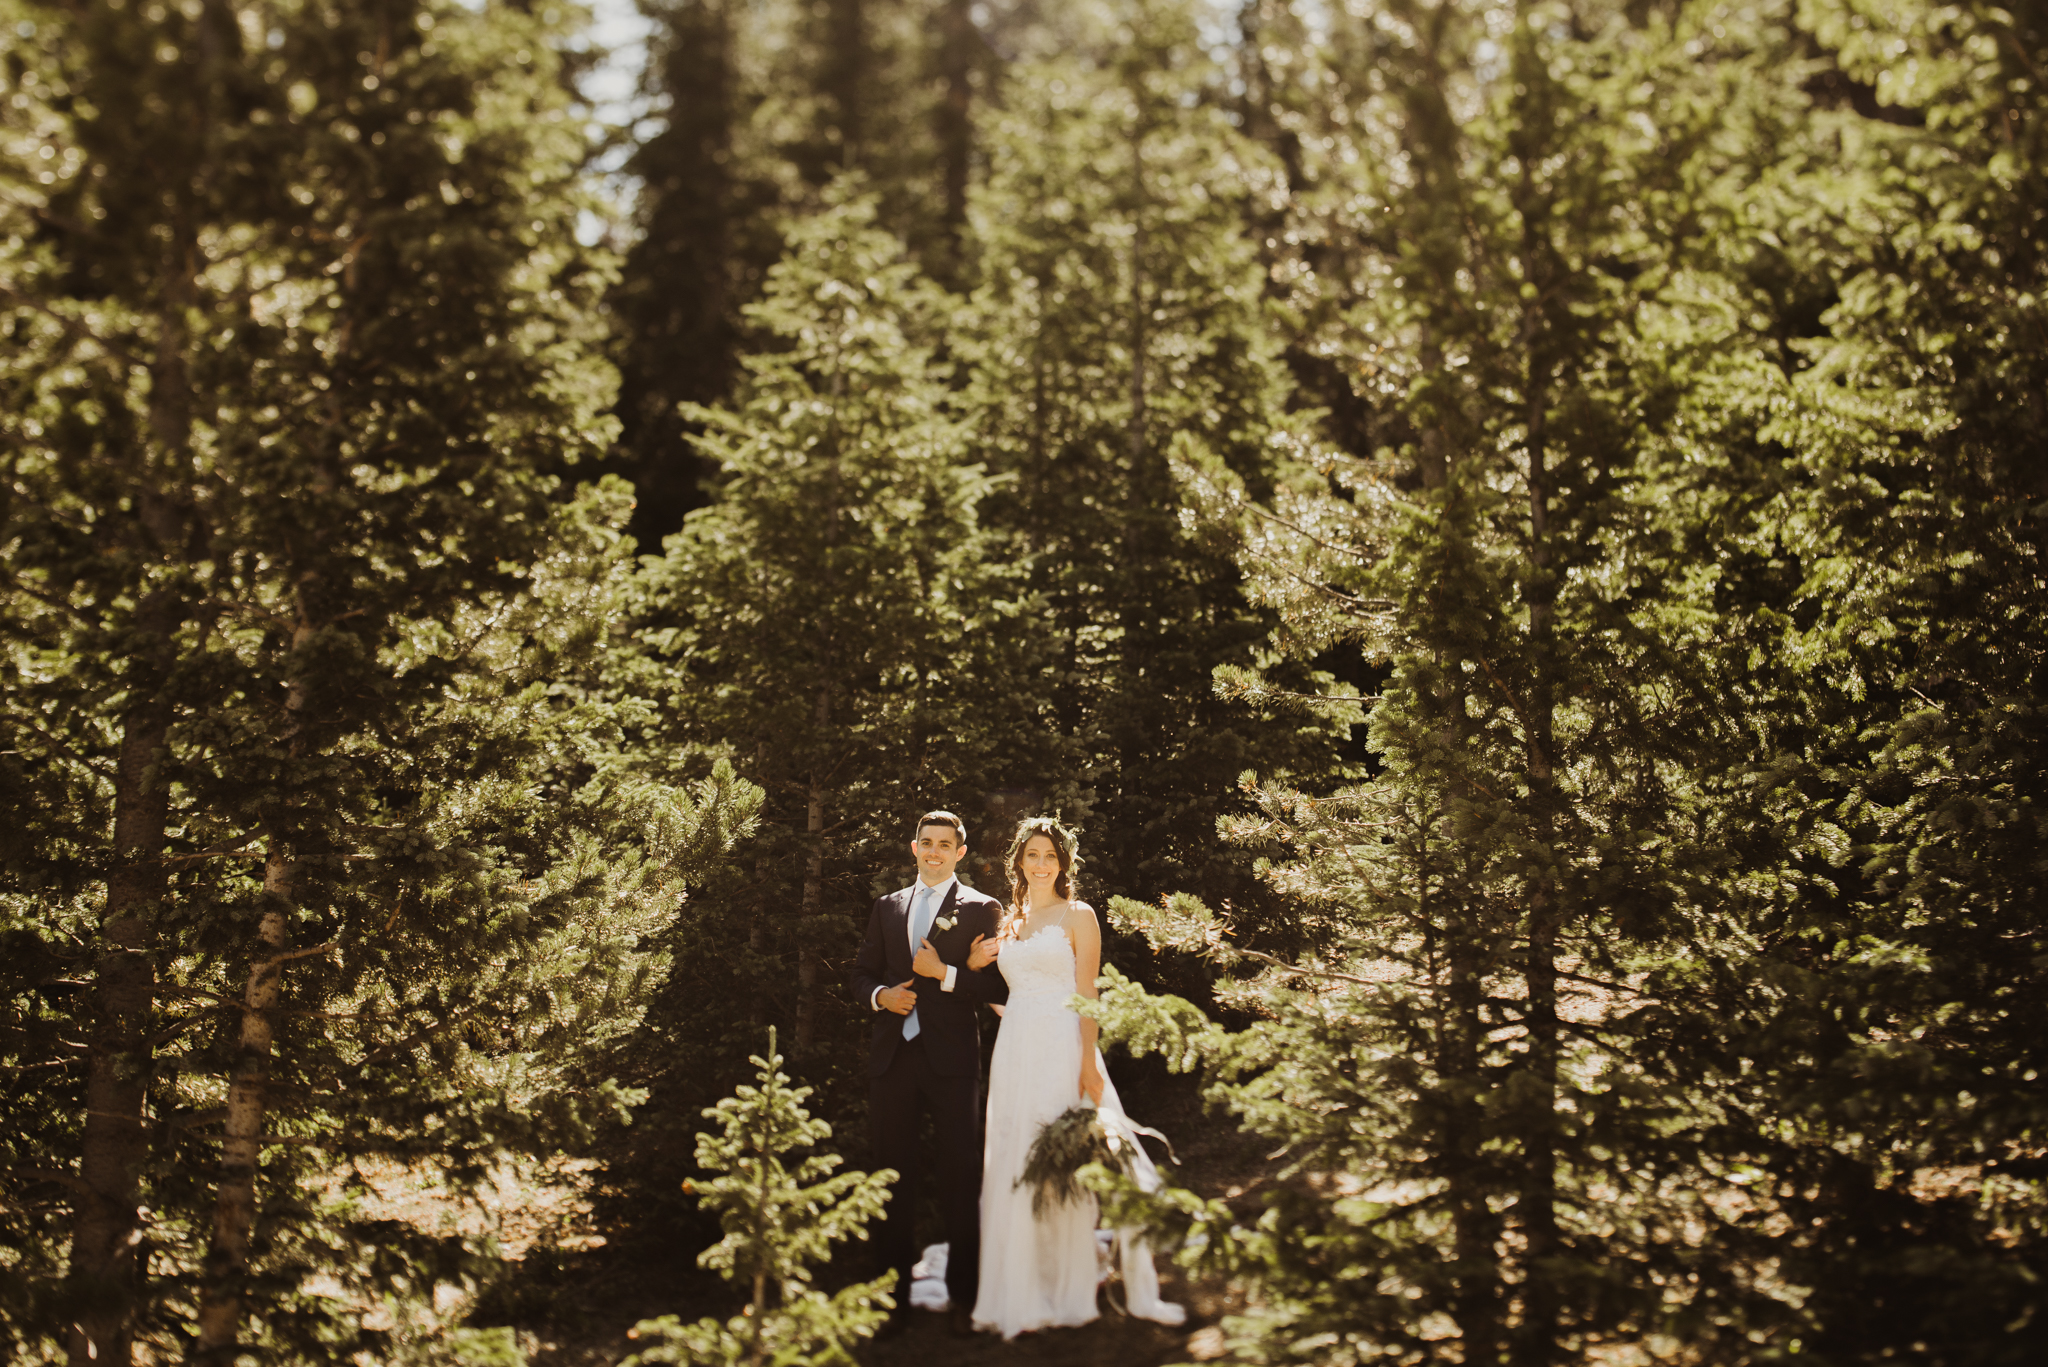 ©Isaiah + Taylor Photography - Estes National Park Adventure Elopement, Colorado Rockies-84.jpg